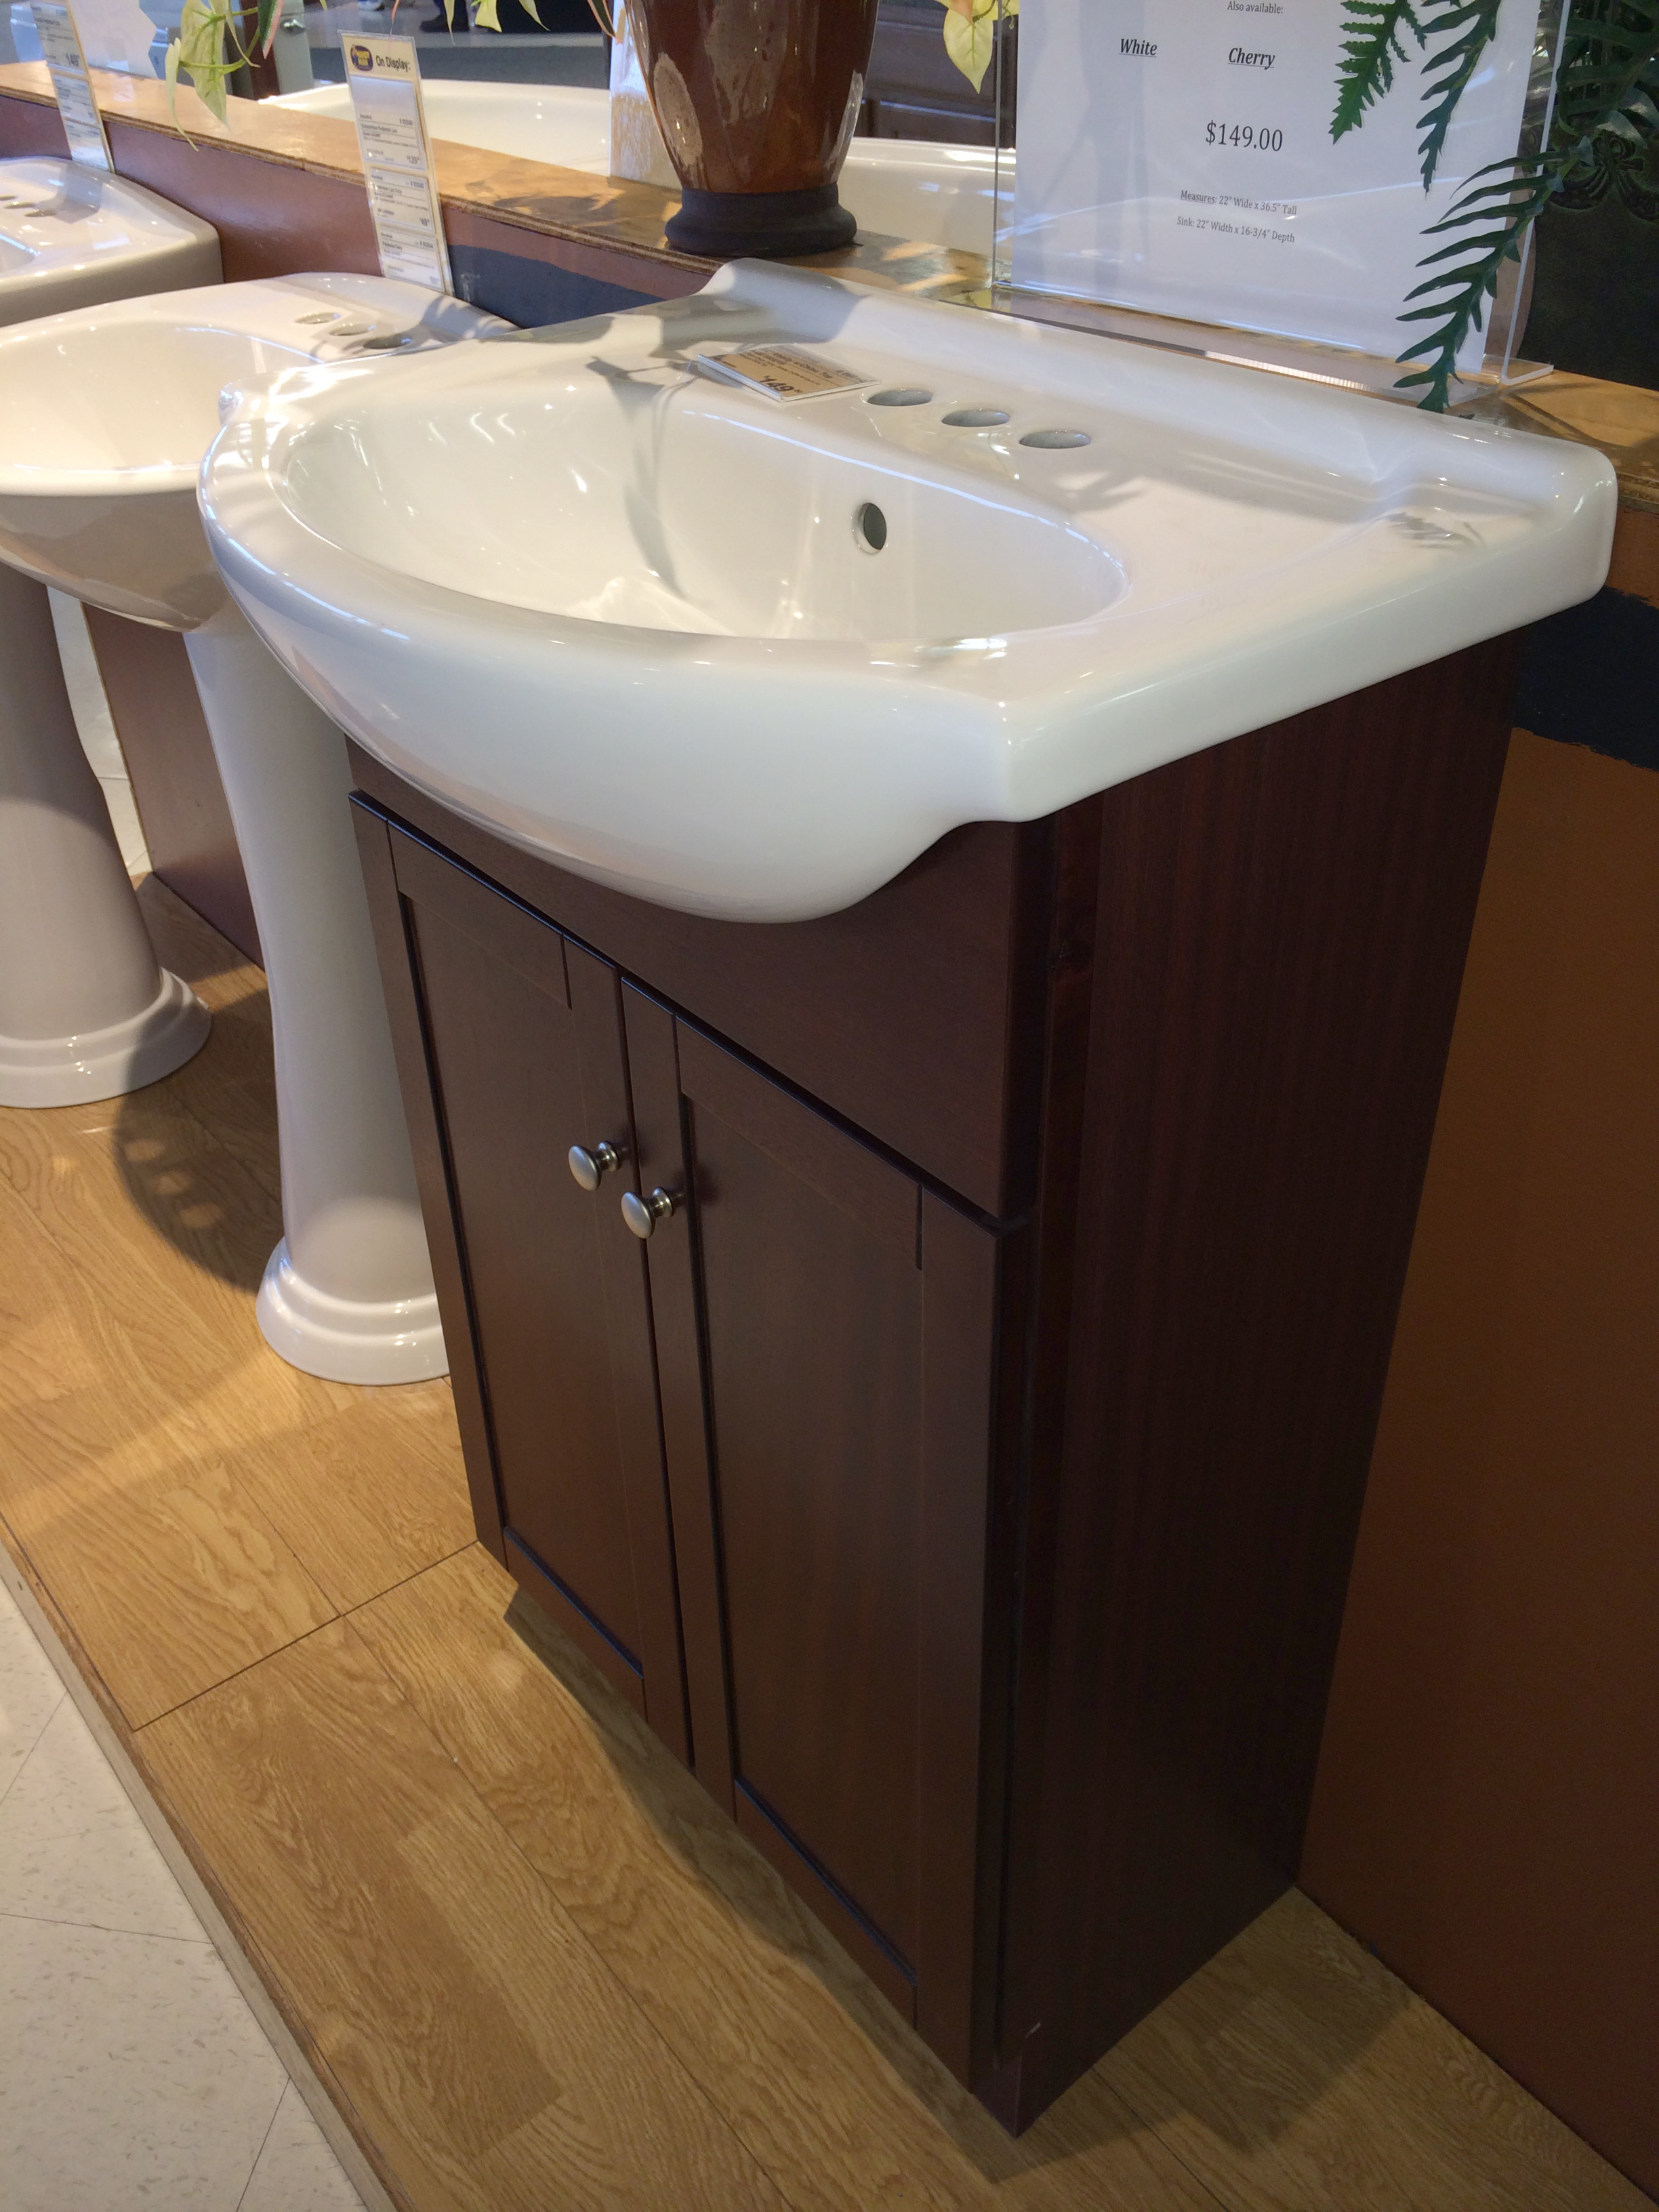 ... Types of Sinks: Bathroom Lavatory / Pedestal Sink Handy Man